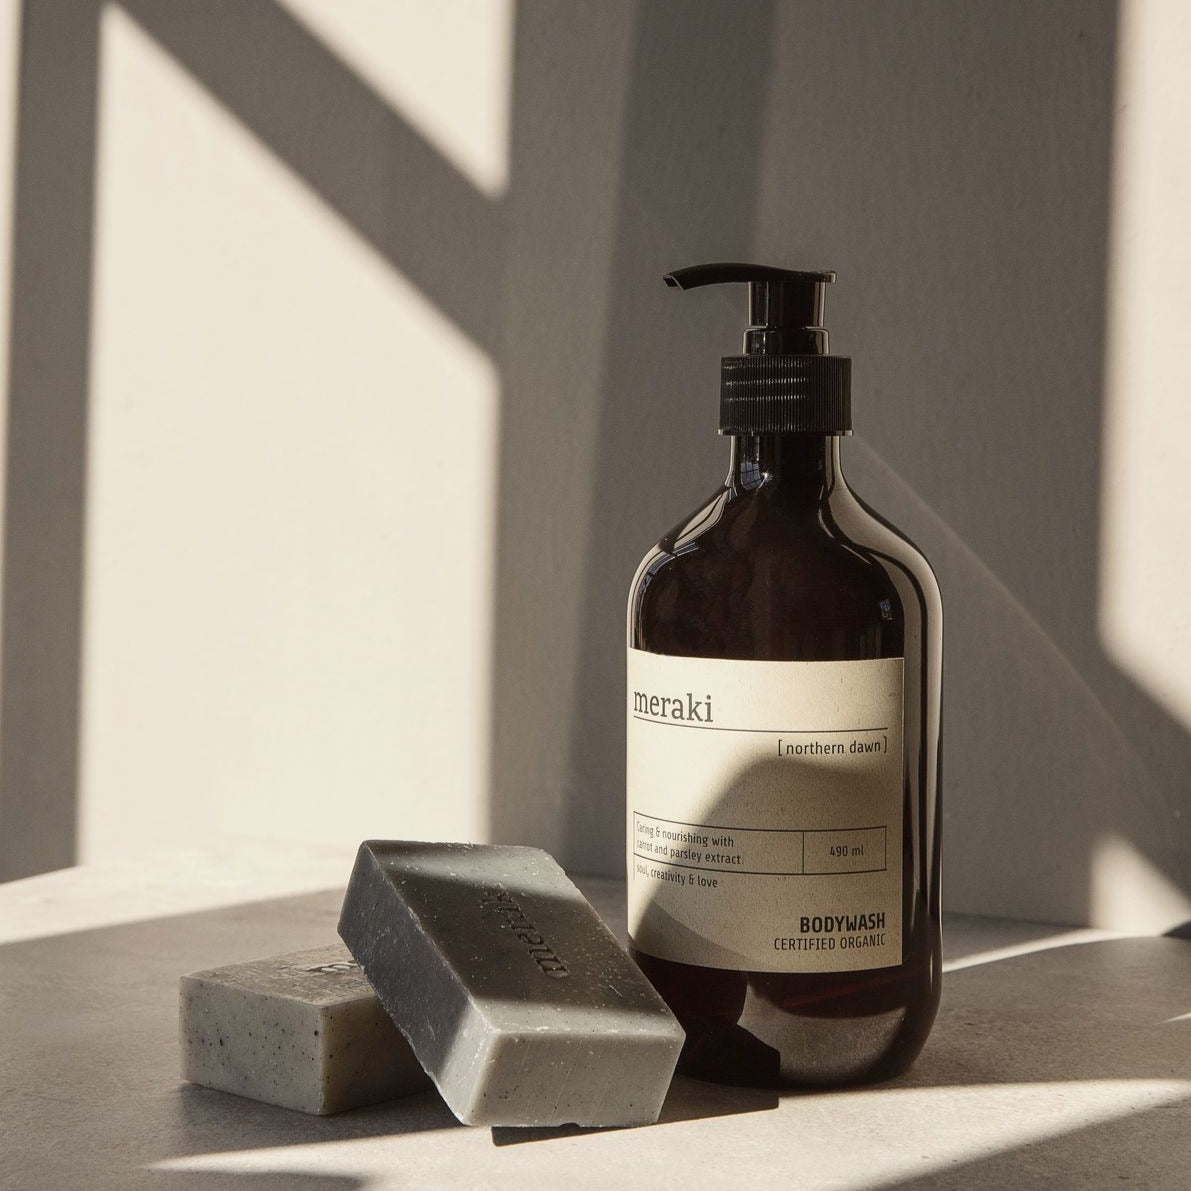 Northern Dawn Body Wash